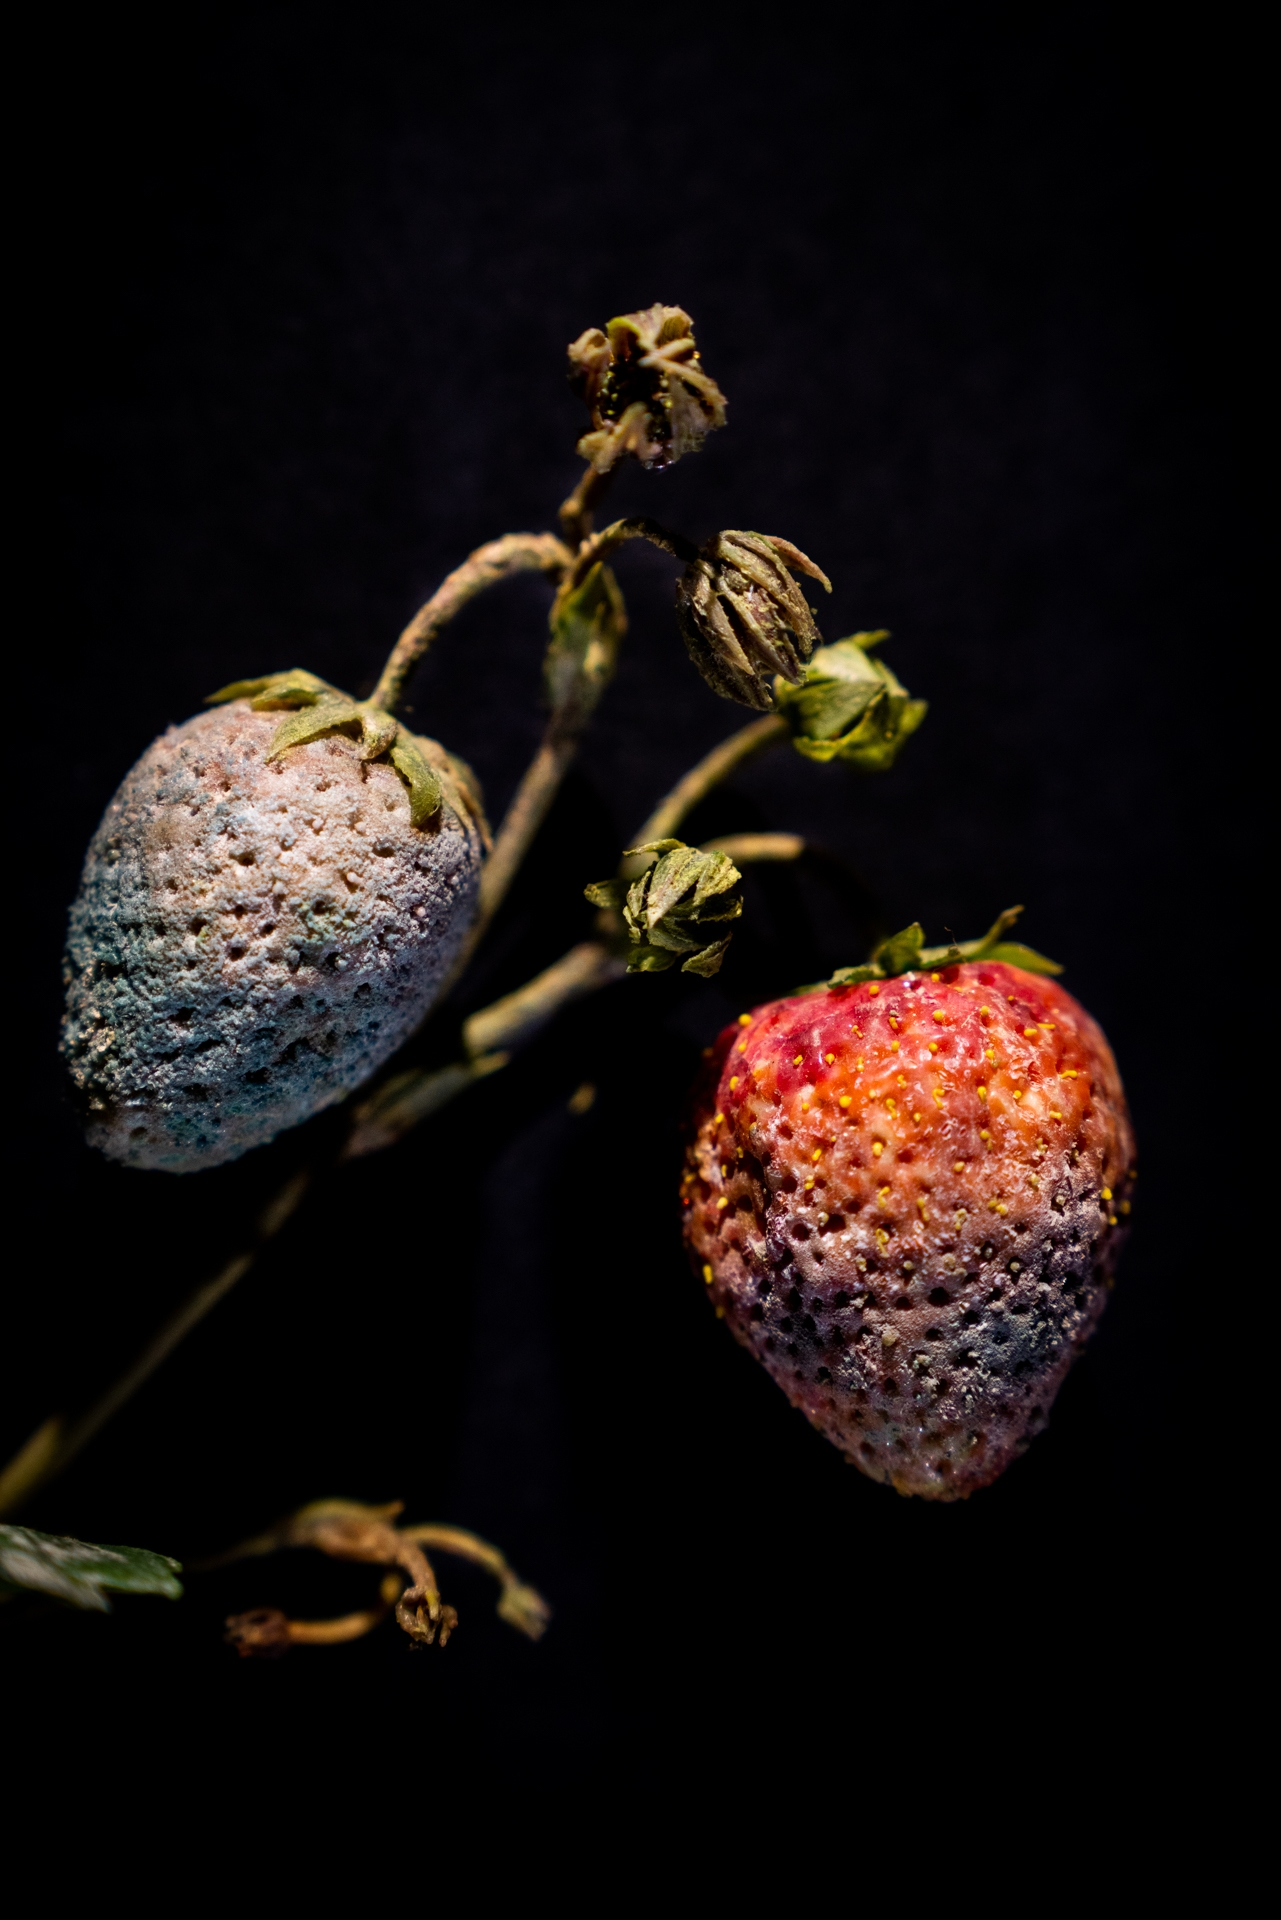 Rotting-fruit art points up plants in peril